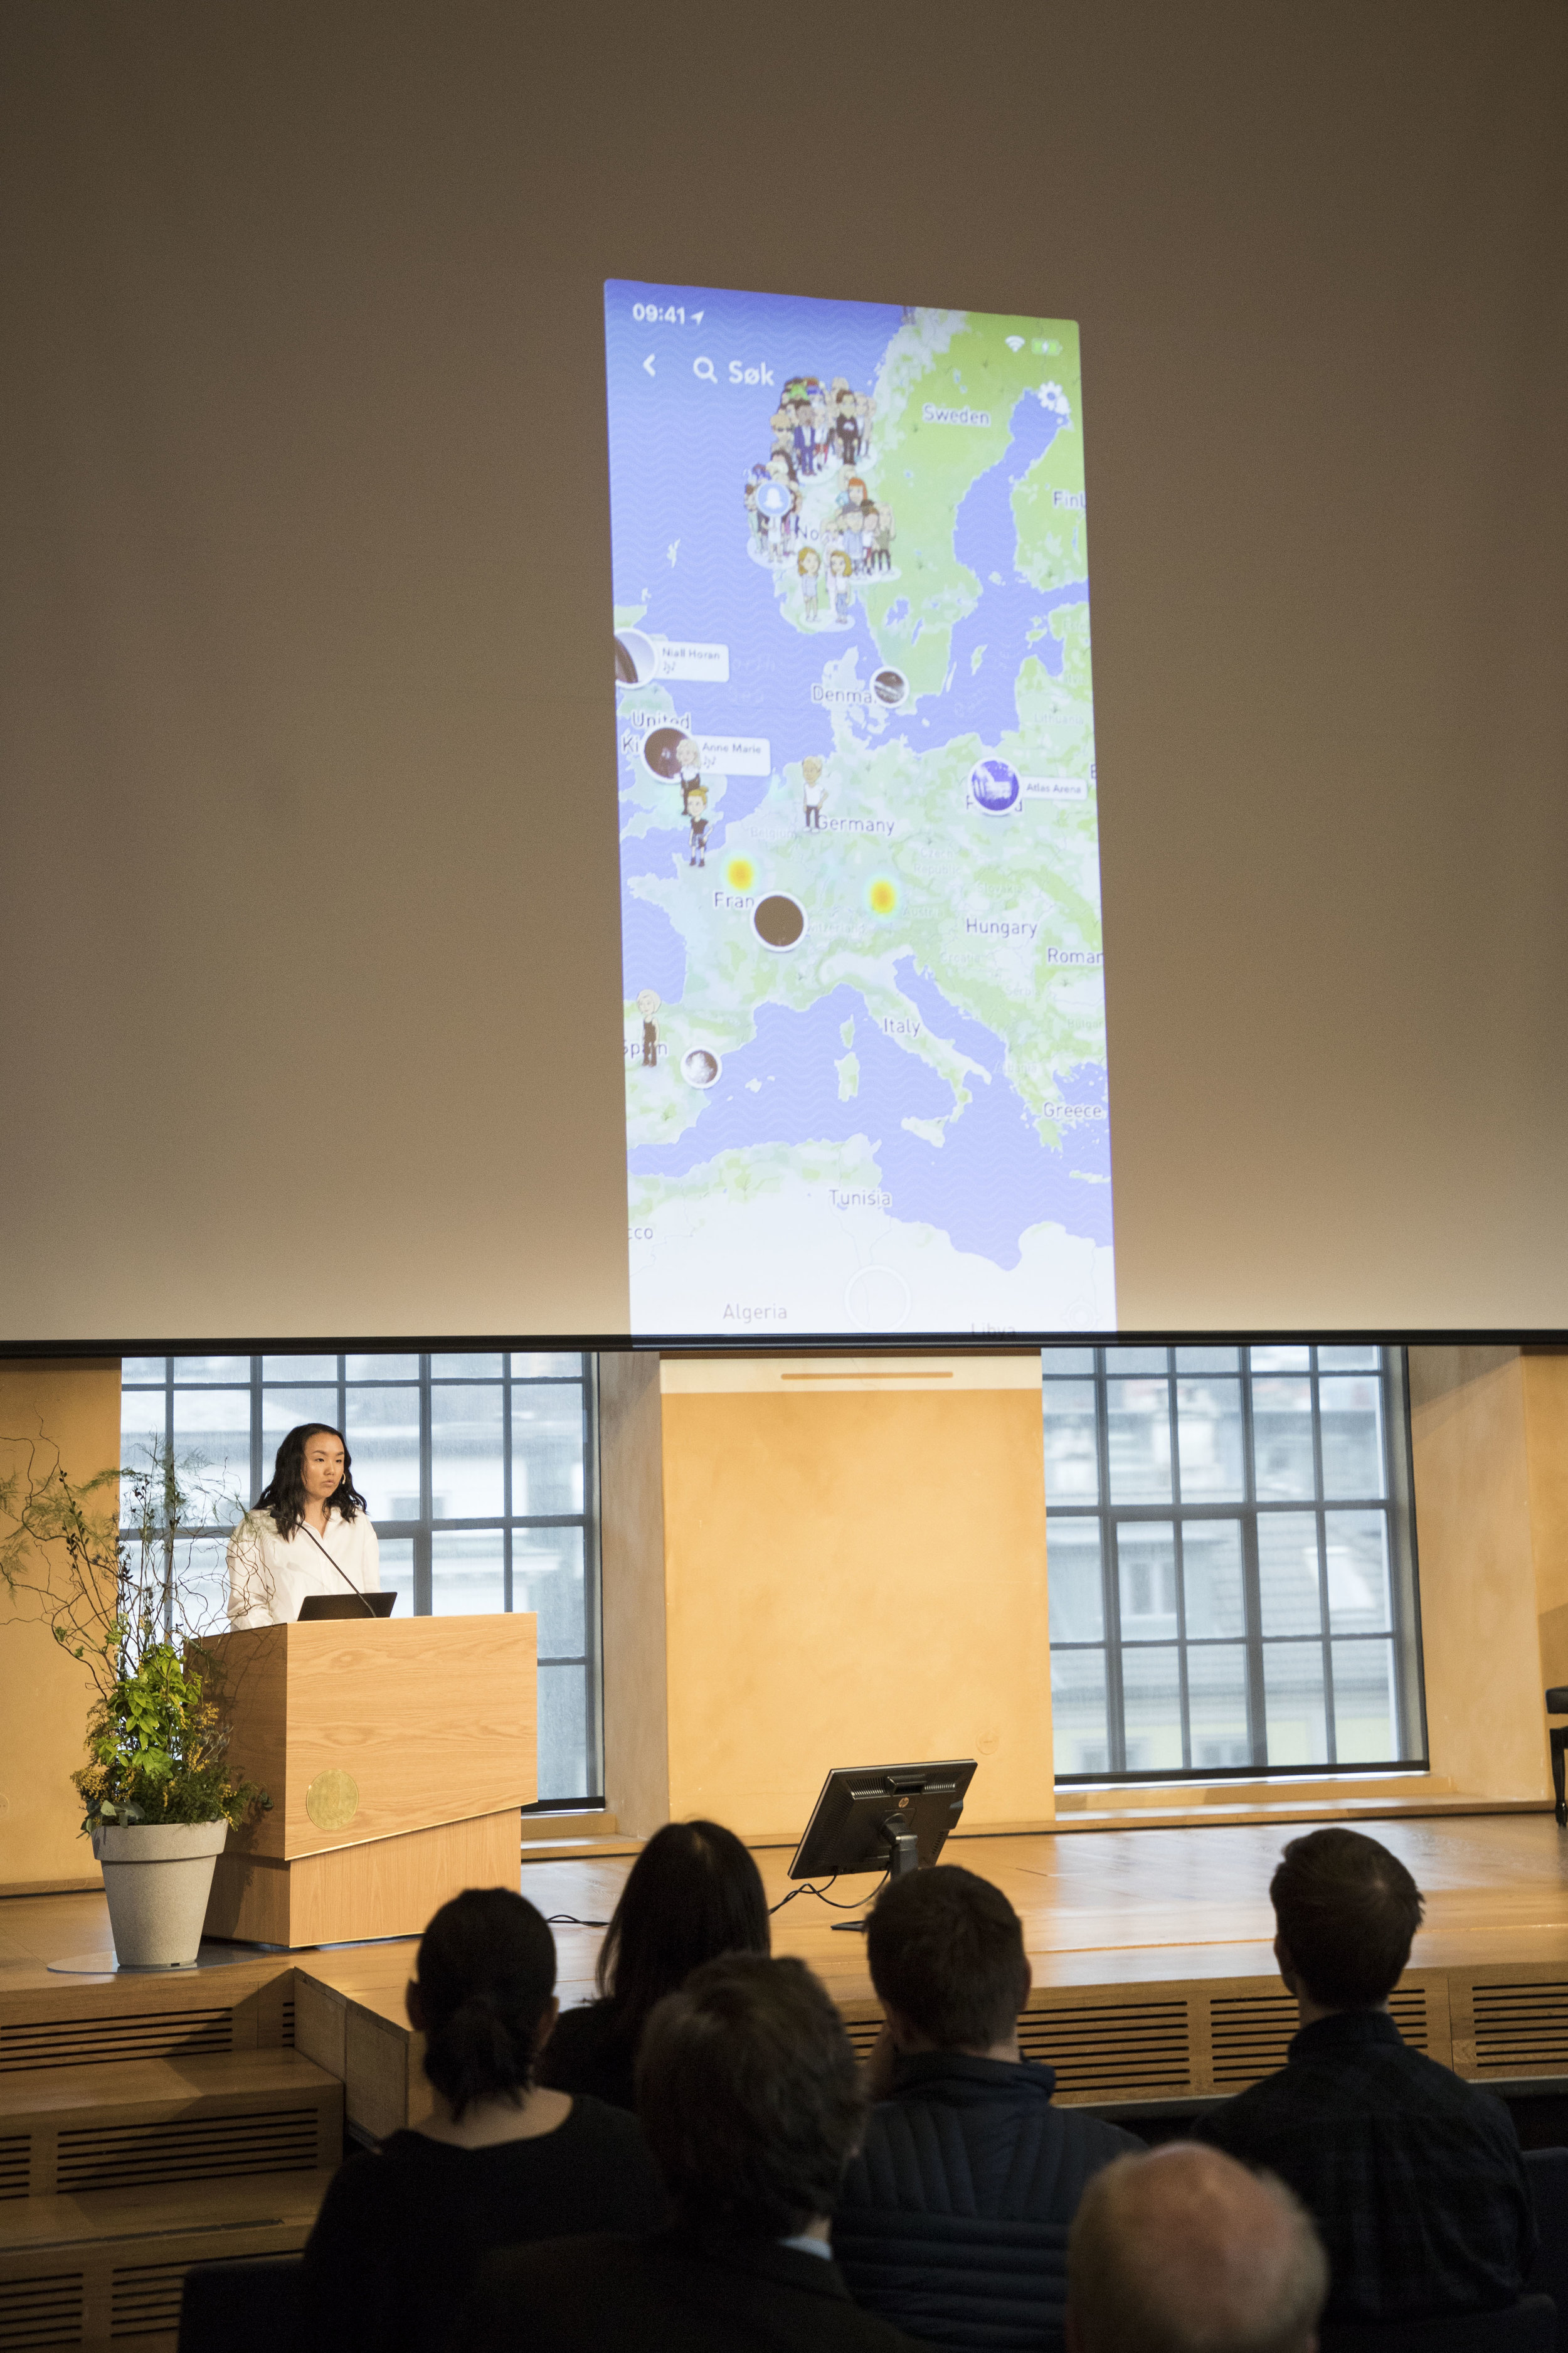 ON THE MAP: Maren Myrseth used Snapchat's map function to exemplify surveillance in our everyday lives. PHOTO: Robert Nedrejord